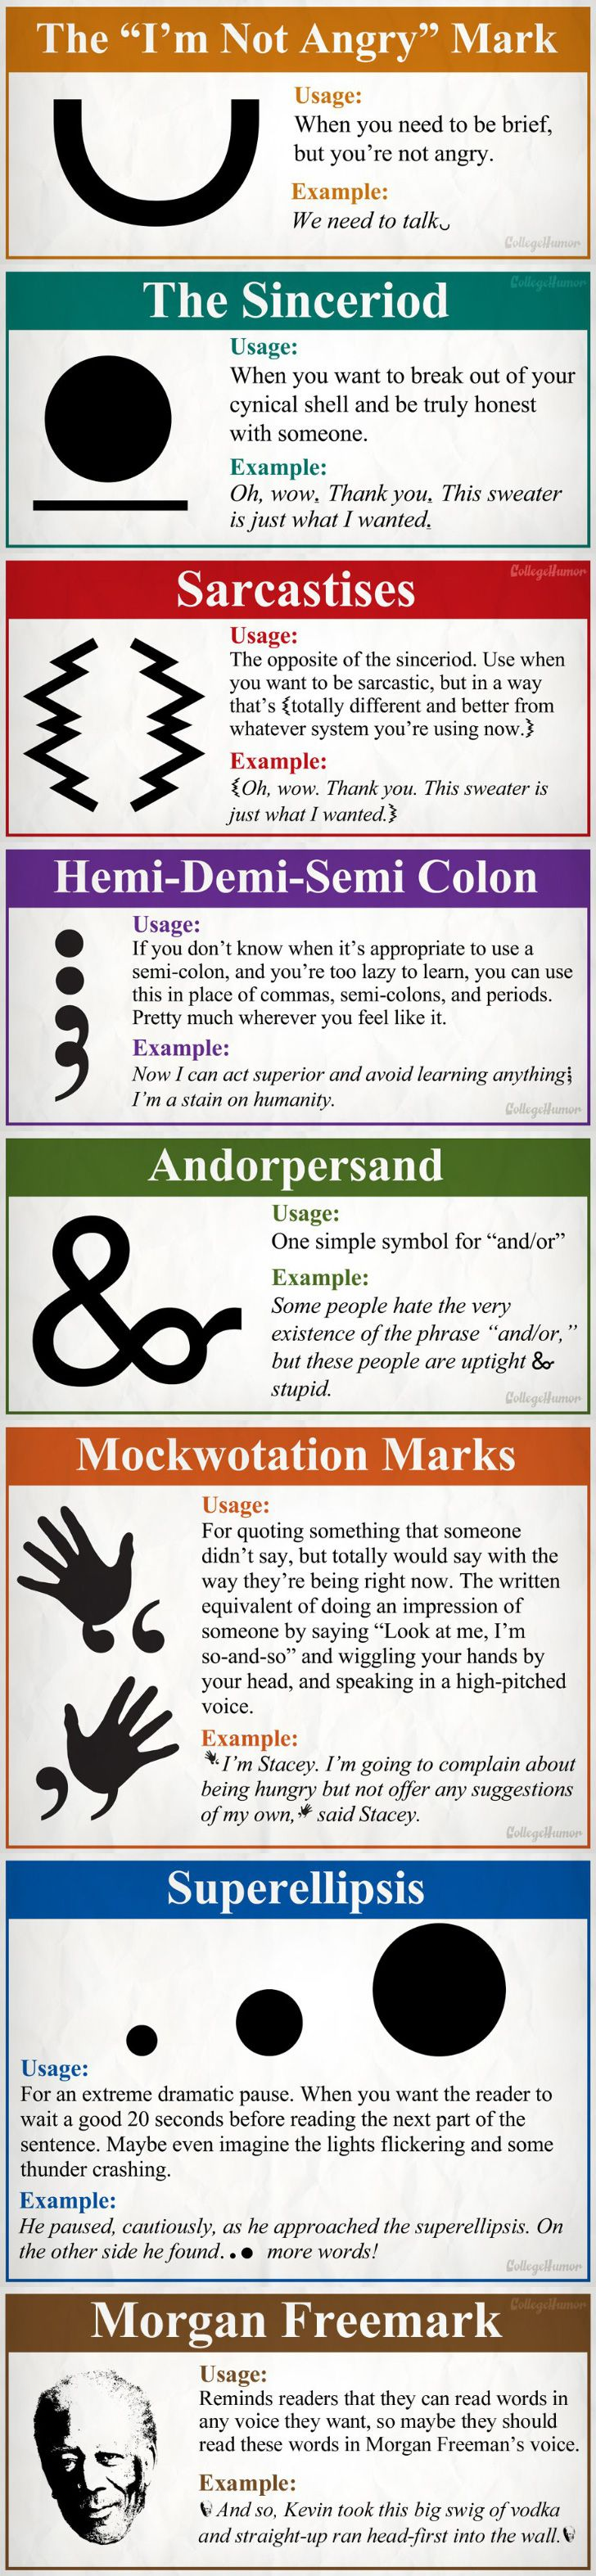 8 new and necessary punctuation marks. I would totally use all of these!